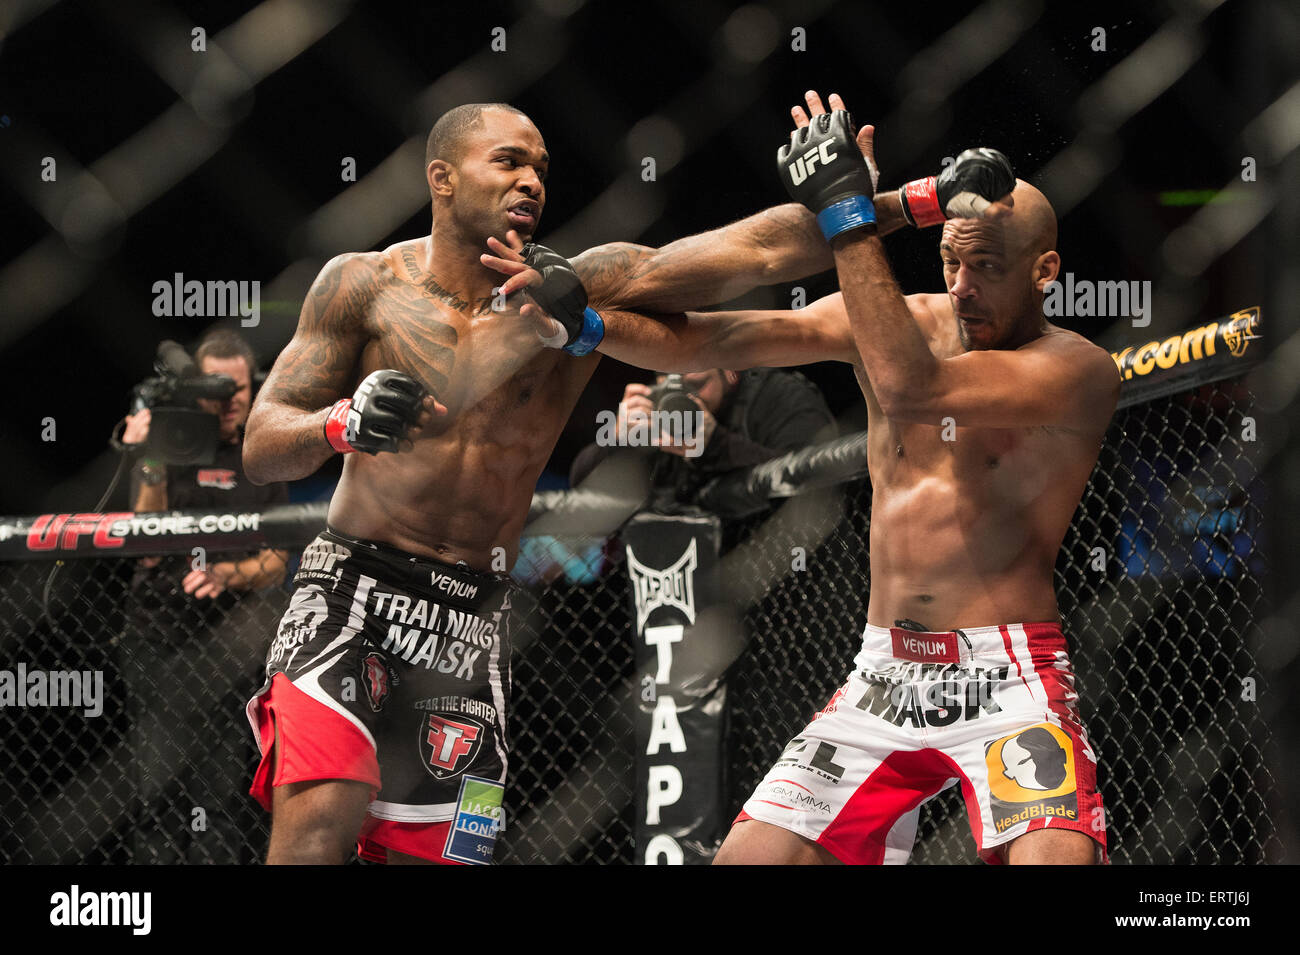 Jimi Manuwa punches out at Cyrille Diabate in The UFC Ultimate fighting Championship at Wembley Arena In London - Stock Image